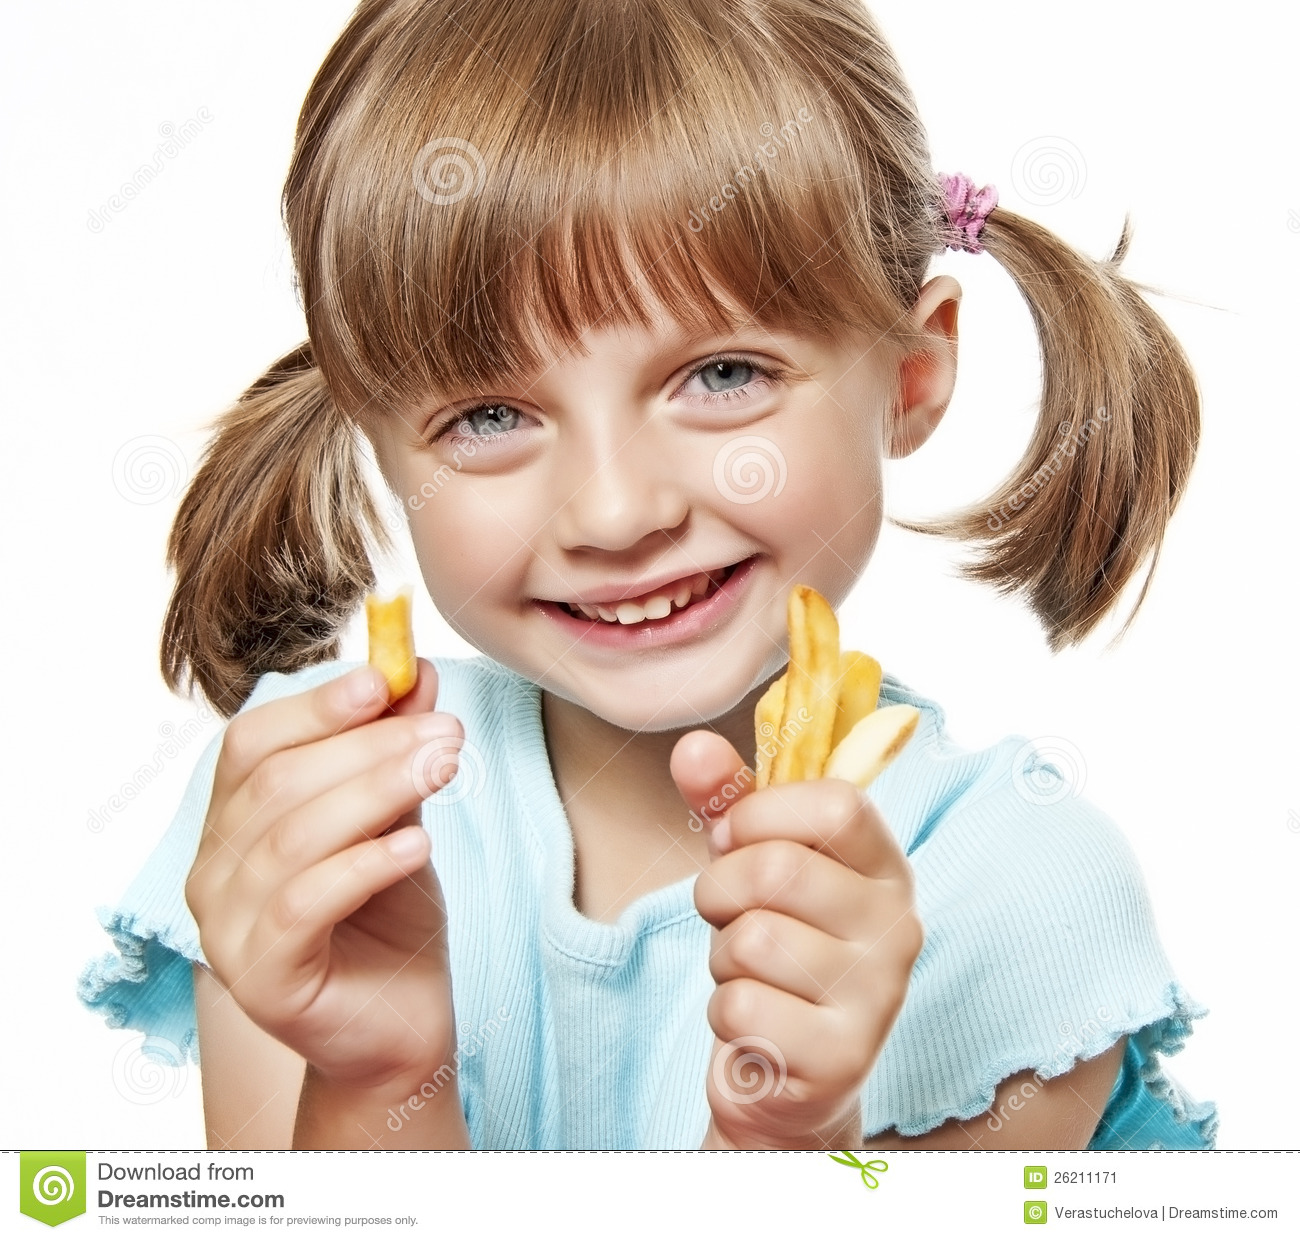 Https Www Dreamstime Com Stock Image Happy Little Girl Eating French Fries Image26211171